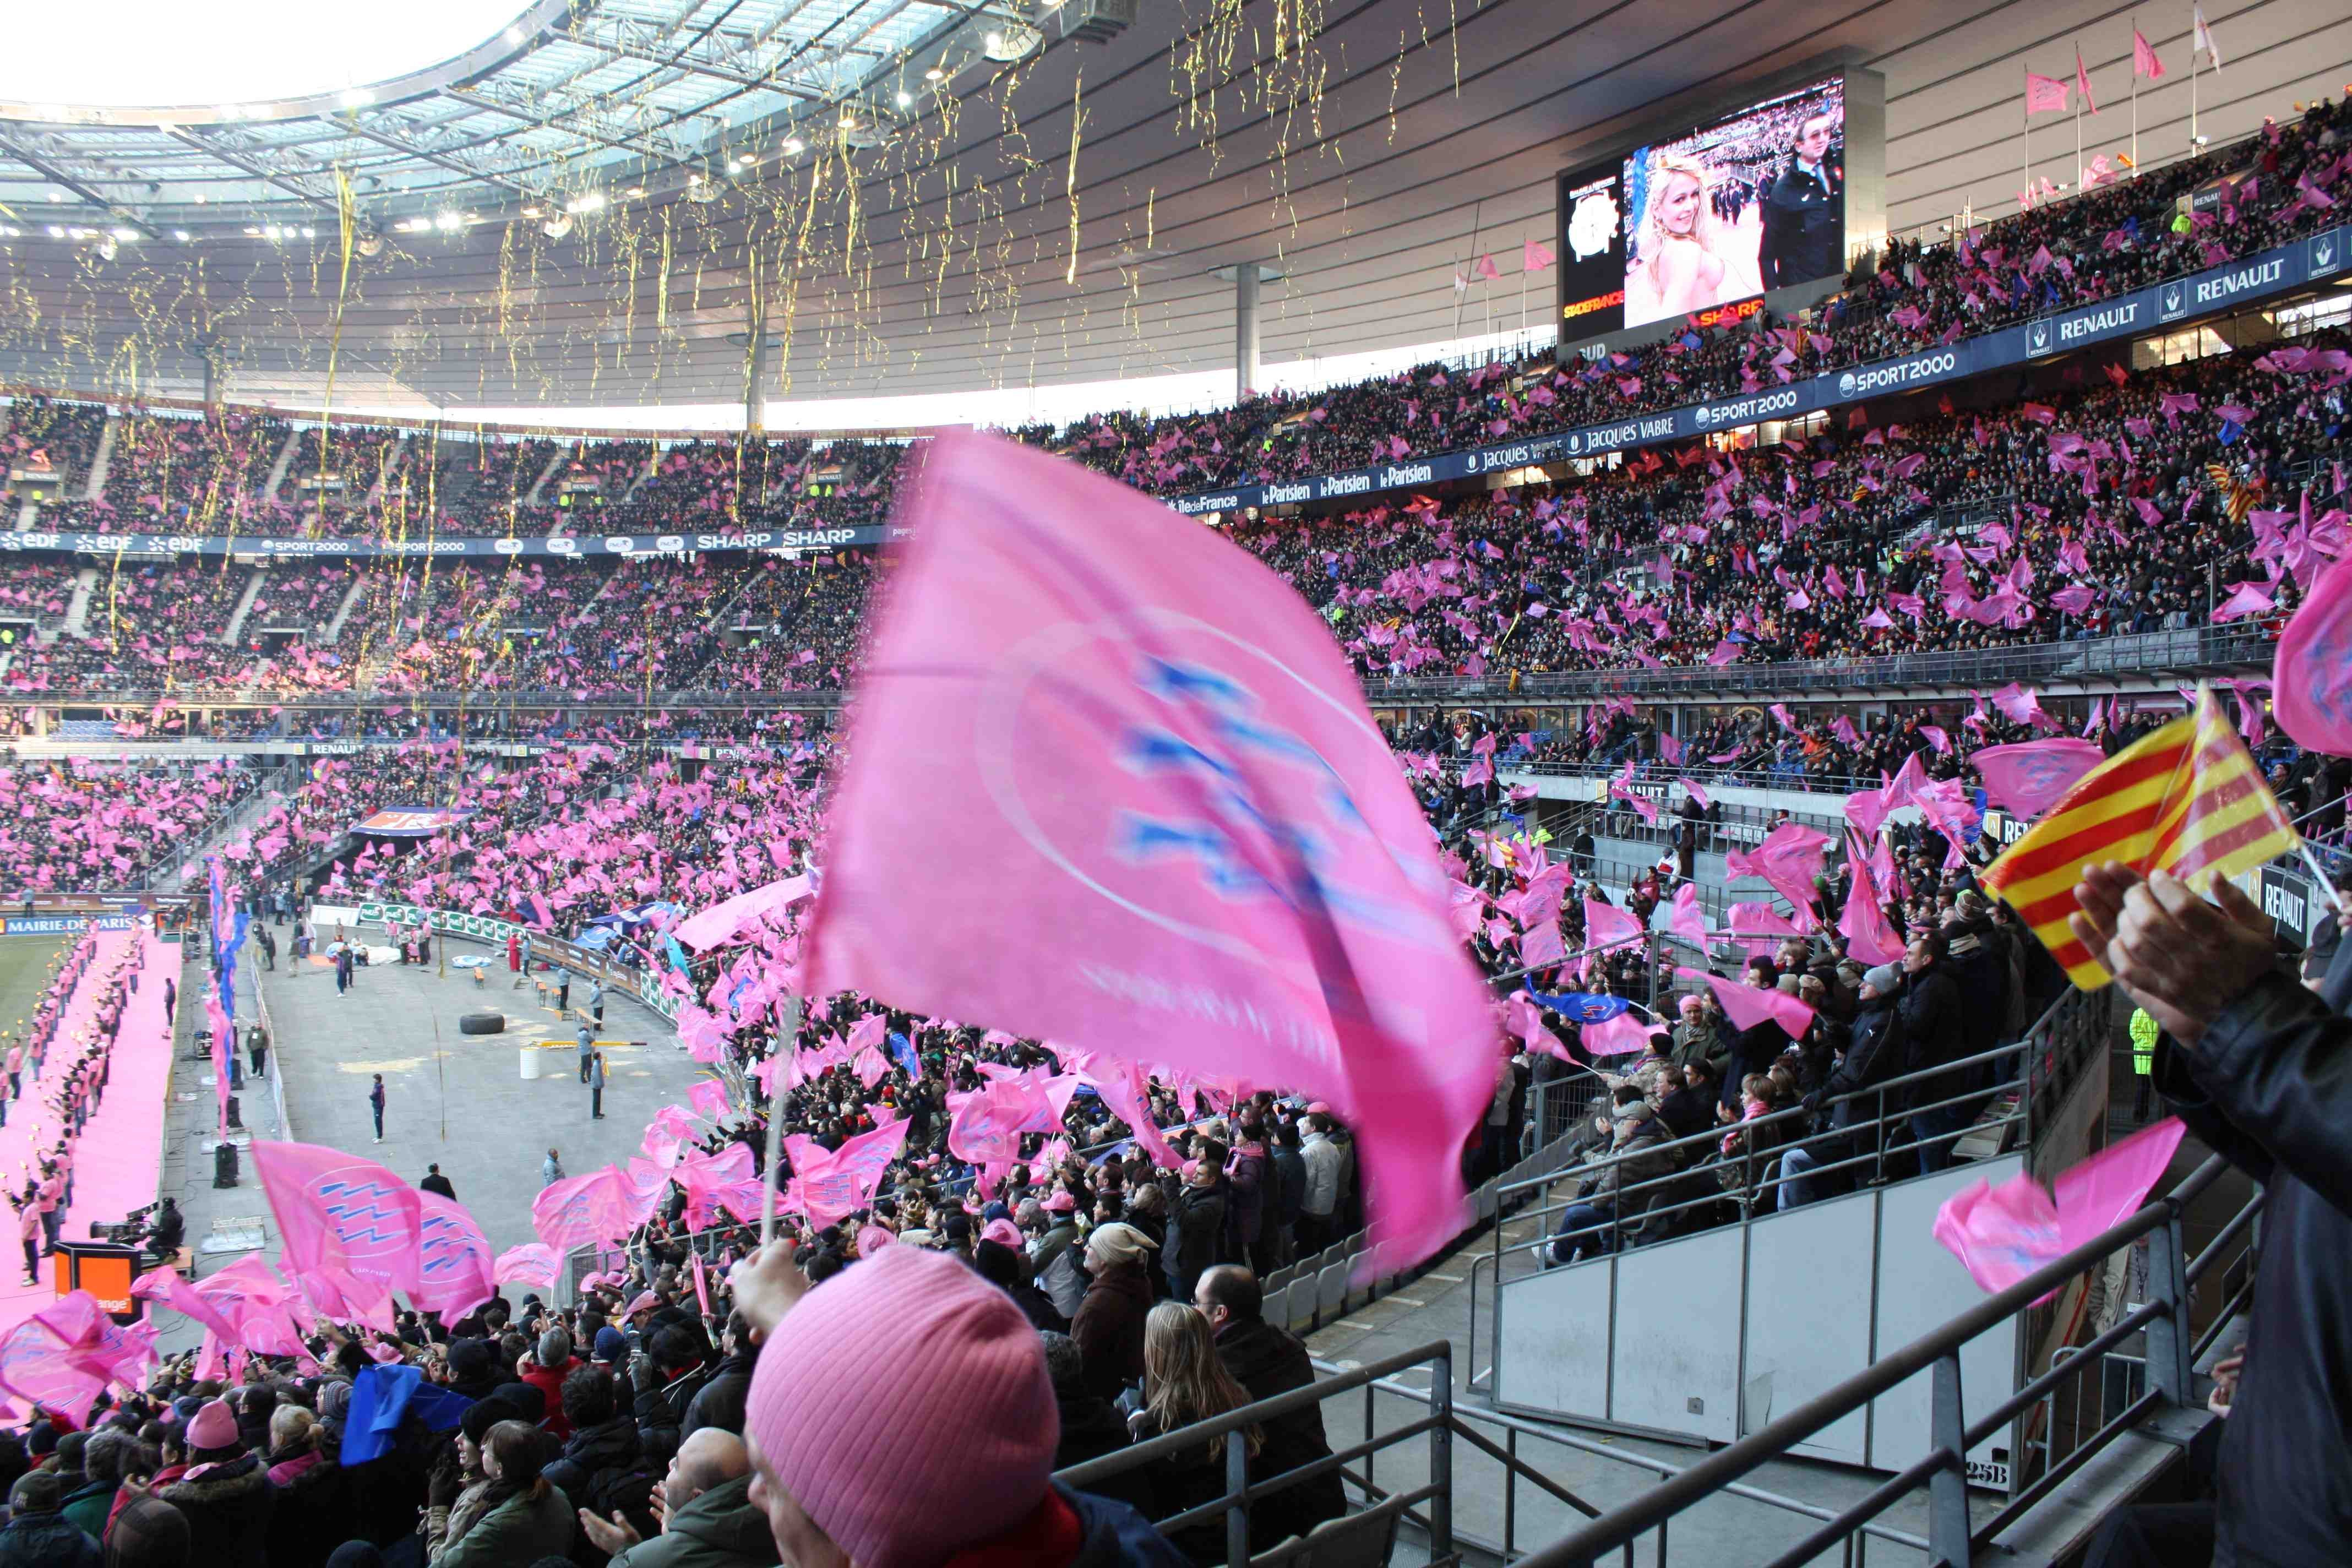 Color rosa en Estadio de Francia